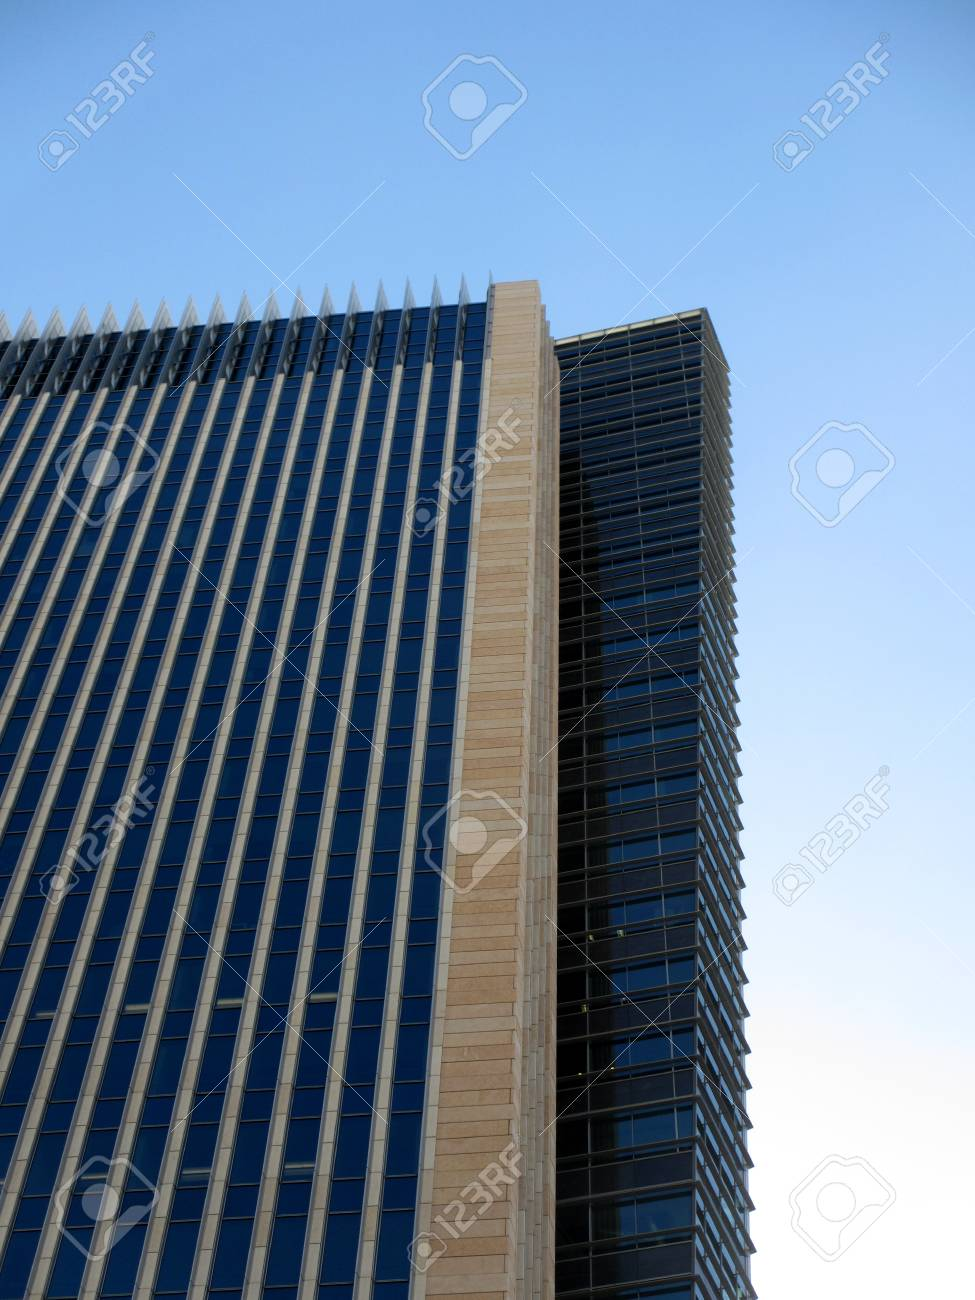 Side Angle of Modern Tall Building with a blue sky  Stock Photo - 17741979